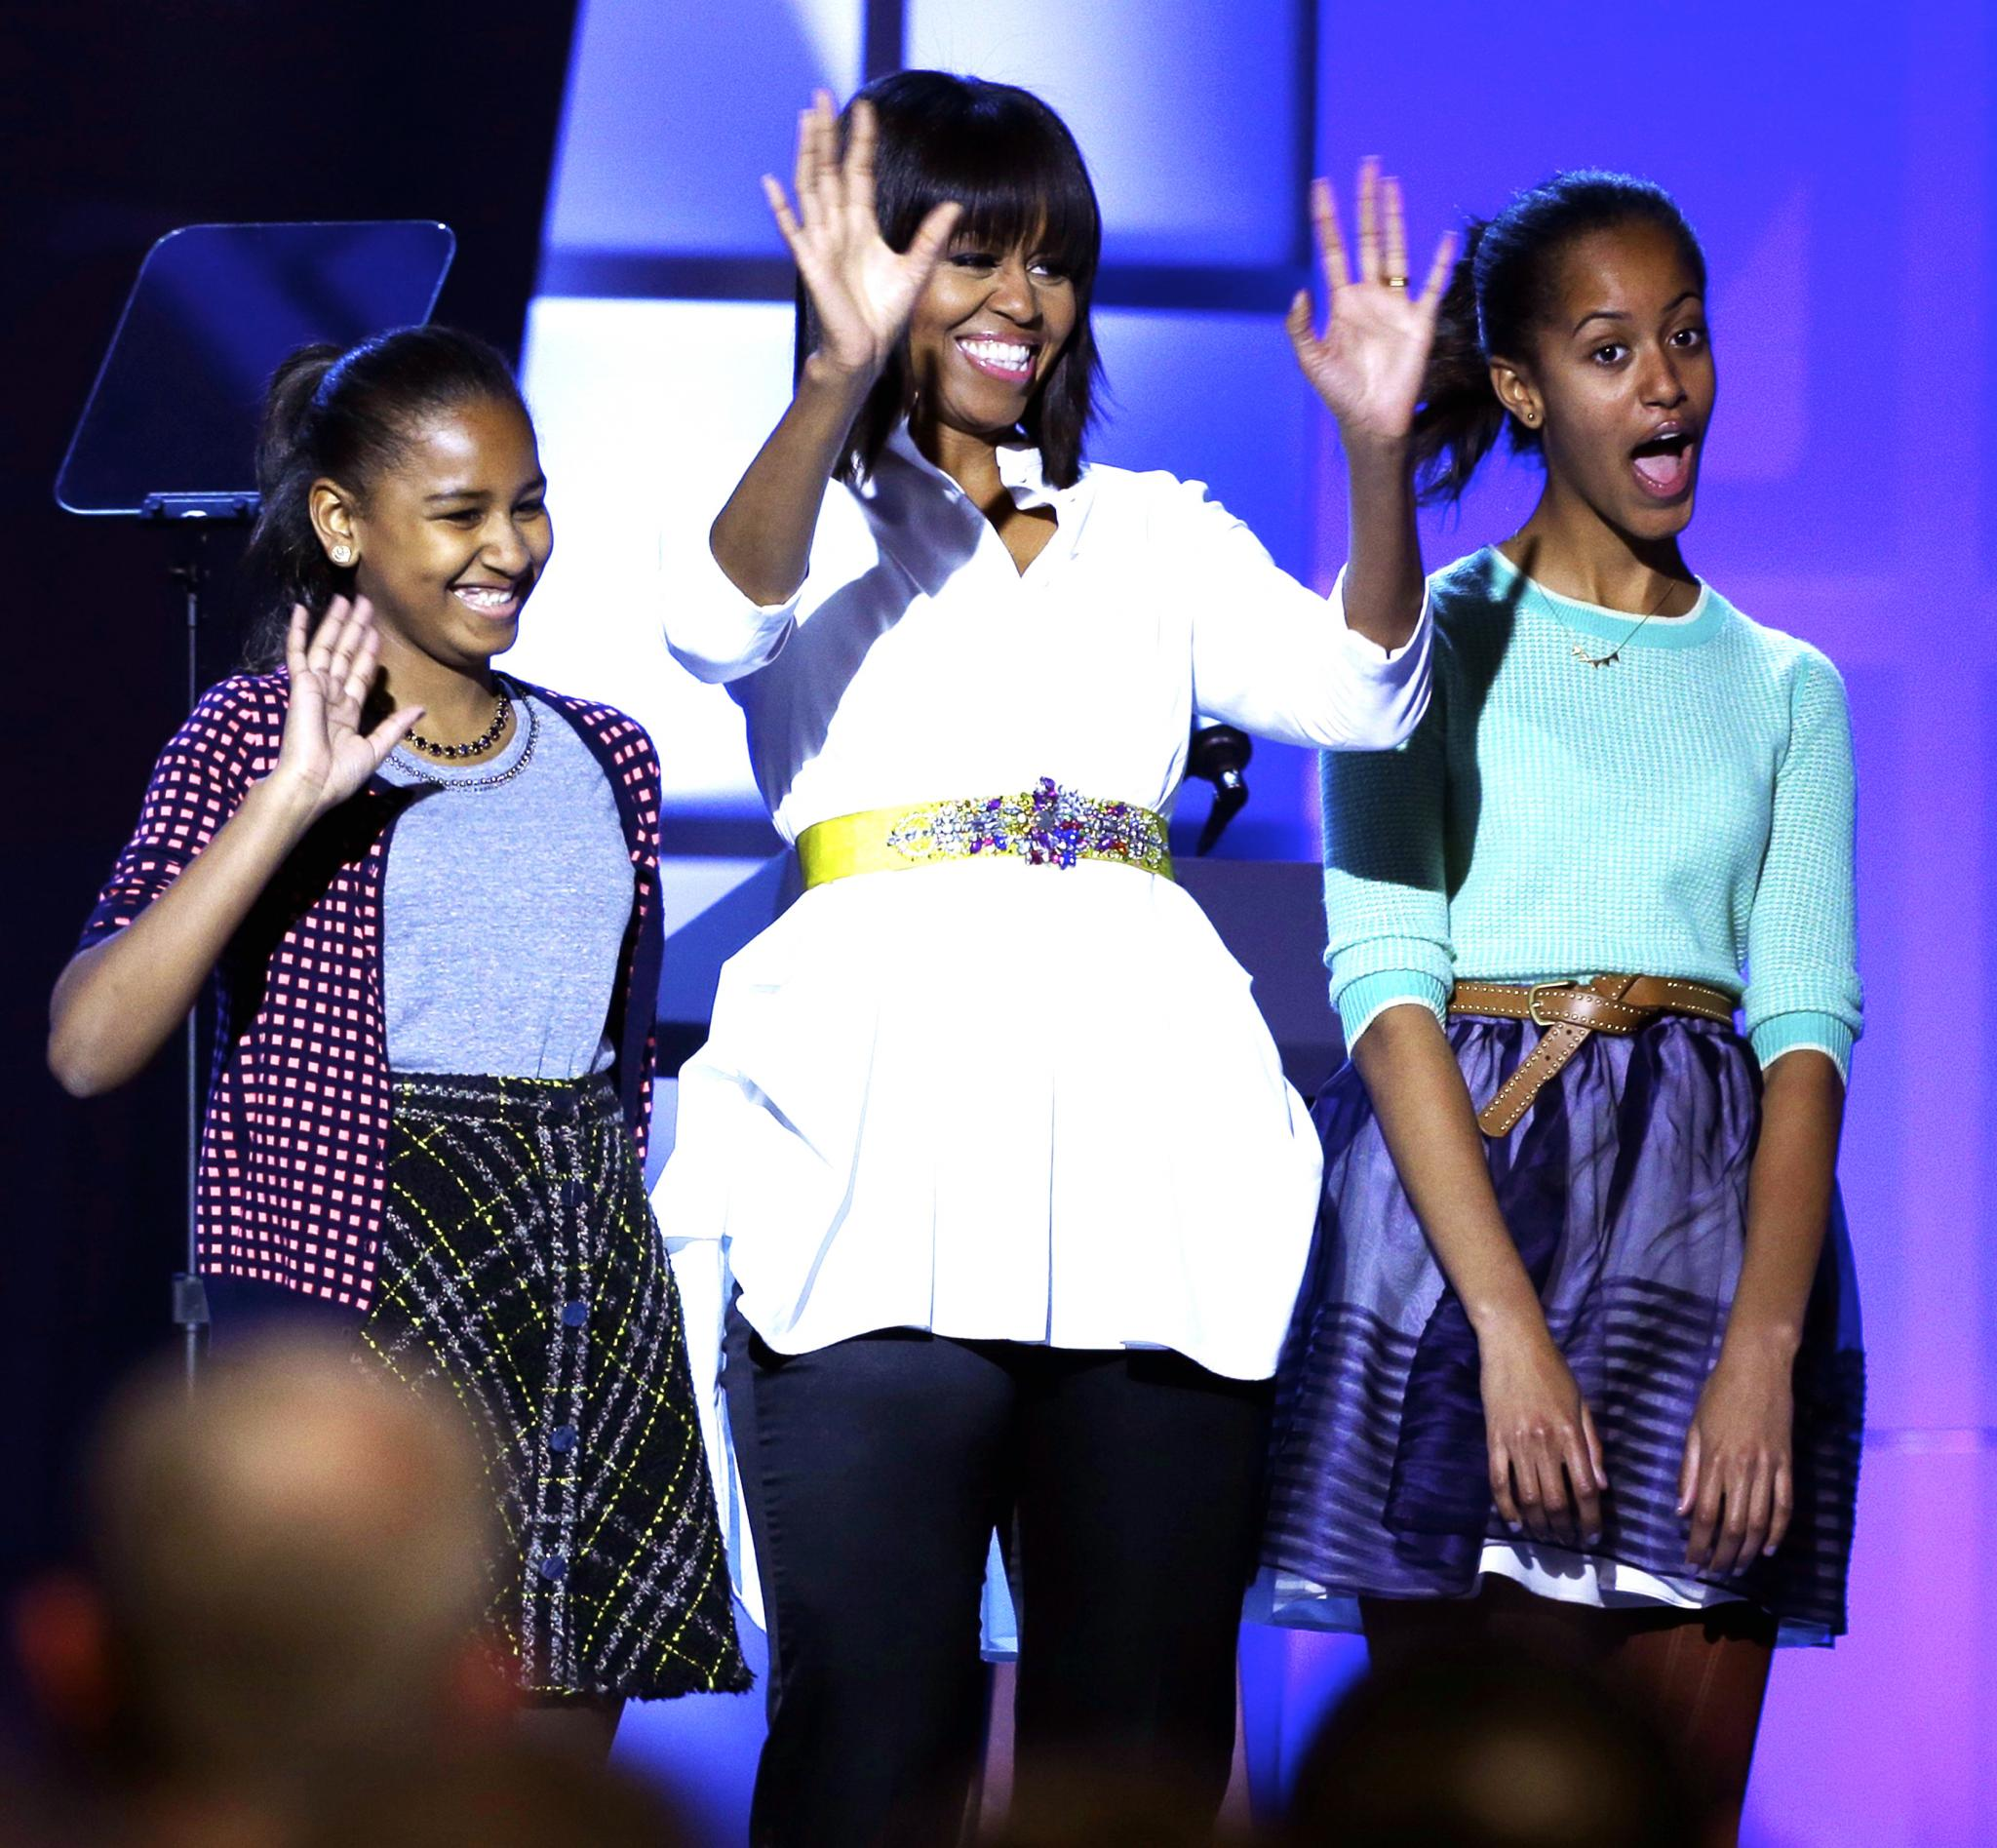 Michelle Obama and Daughters Sasha and Malia Attend 'On the Run' Concert